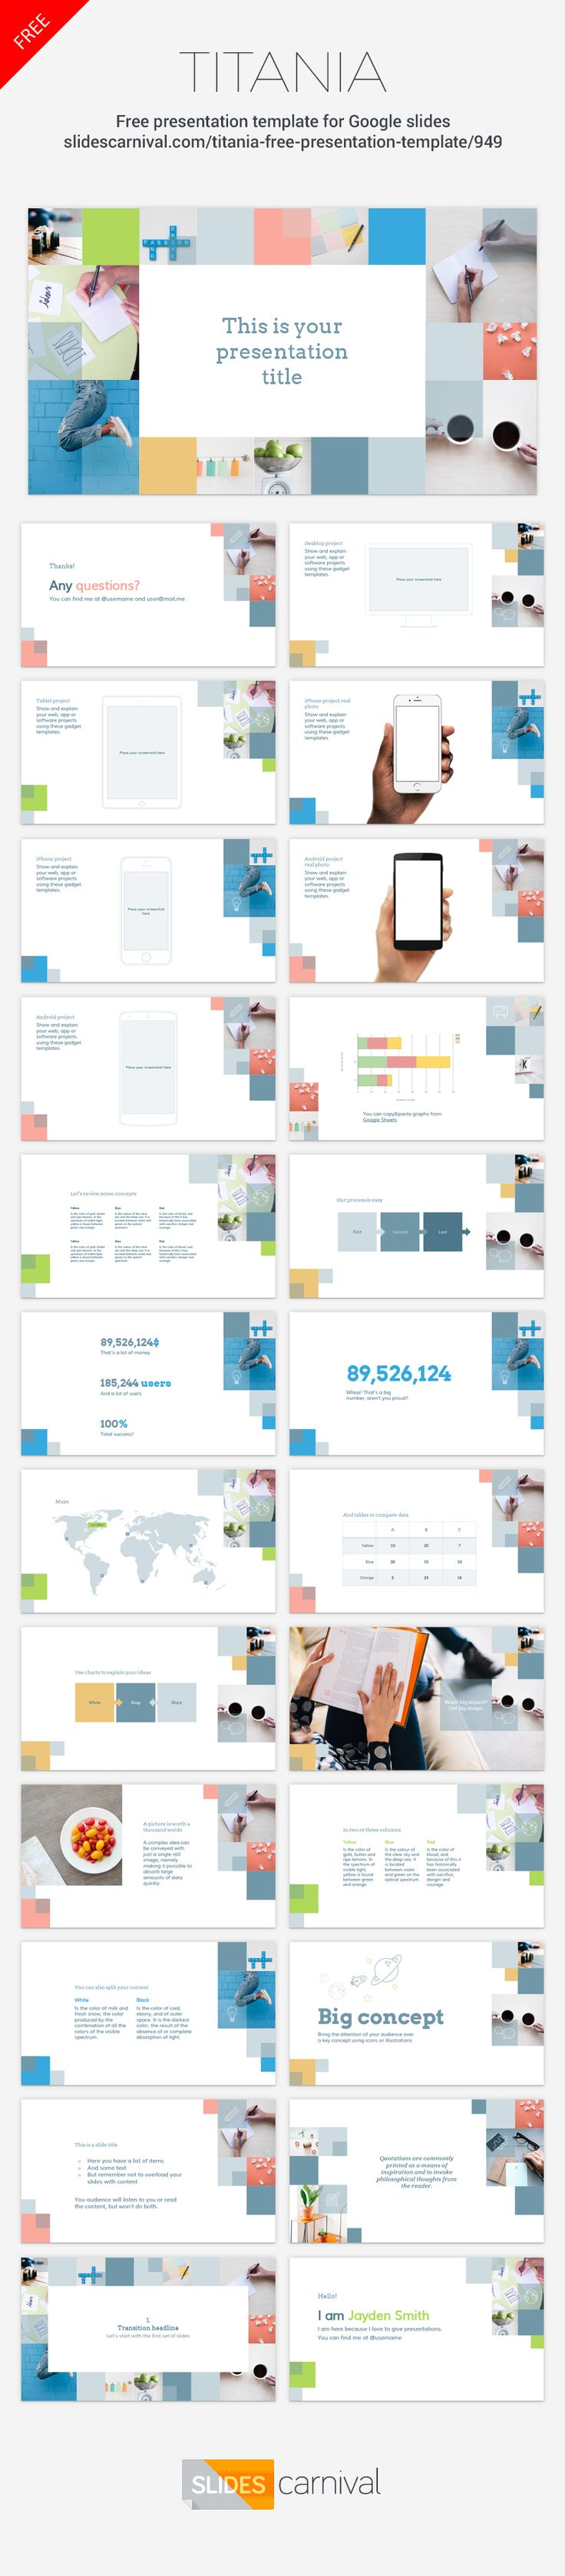 interesting topics presentations dr sergio thiesen presentations  best ideas about presentation topics interesting positive colorful and professional this presentation template suits a great